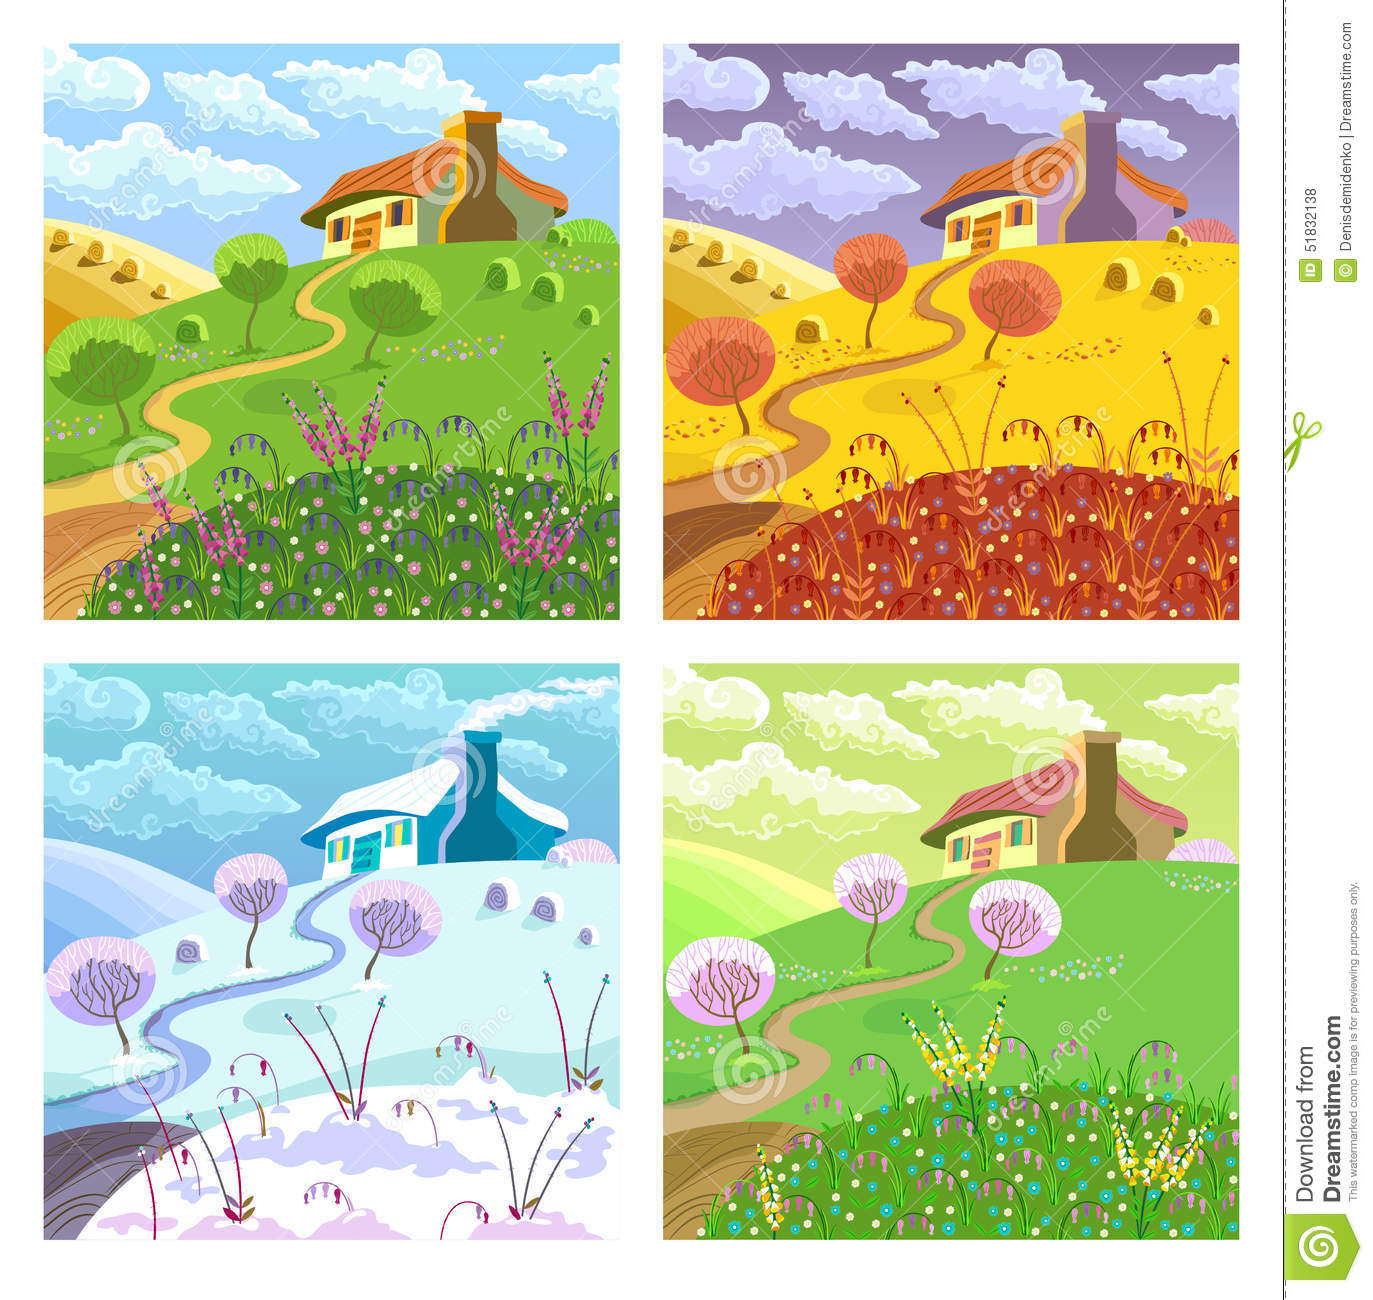 Rural Landscape Four Seasons Stock Vector Image 51832138